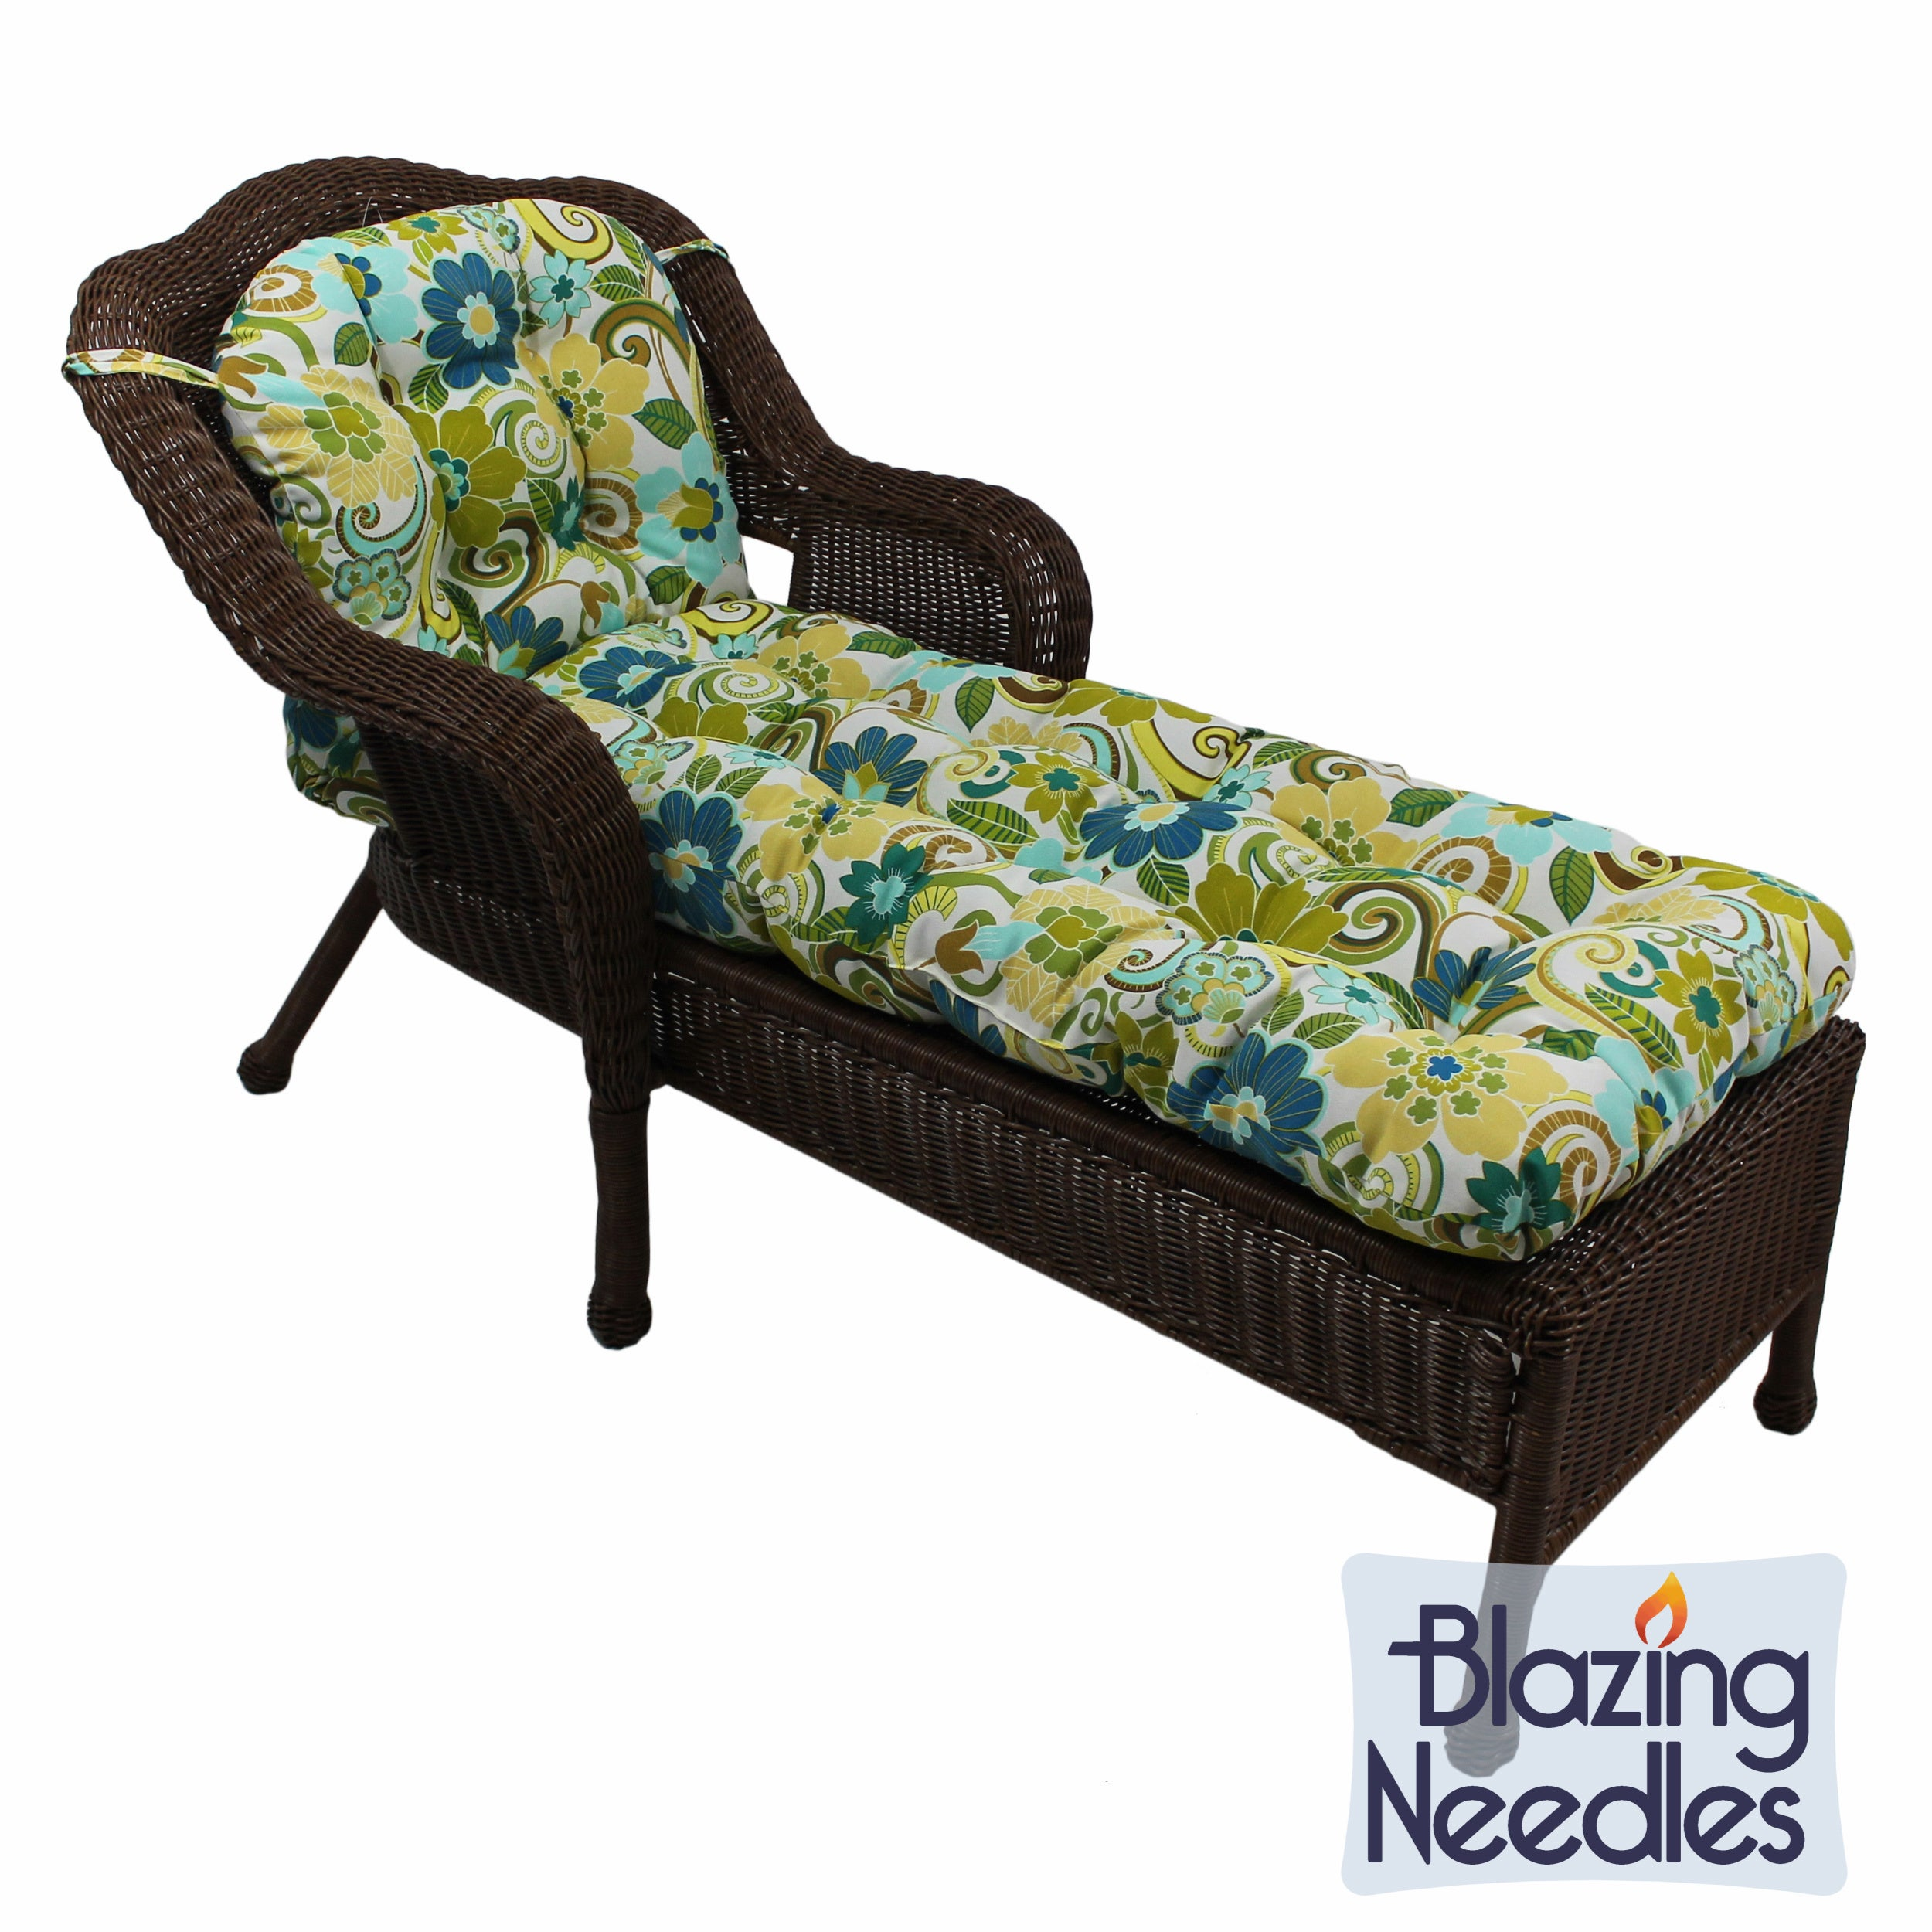 blazing needles 69x21 inch u shaped outdoor tufted chaise lounge